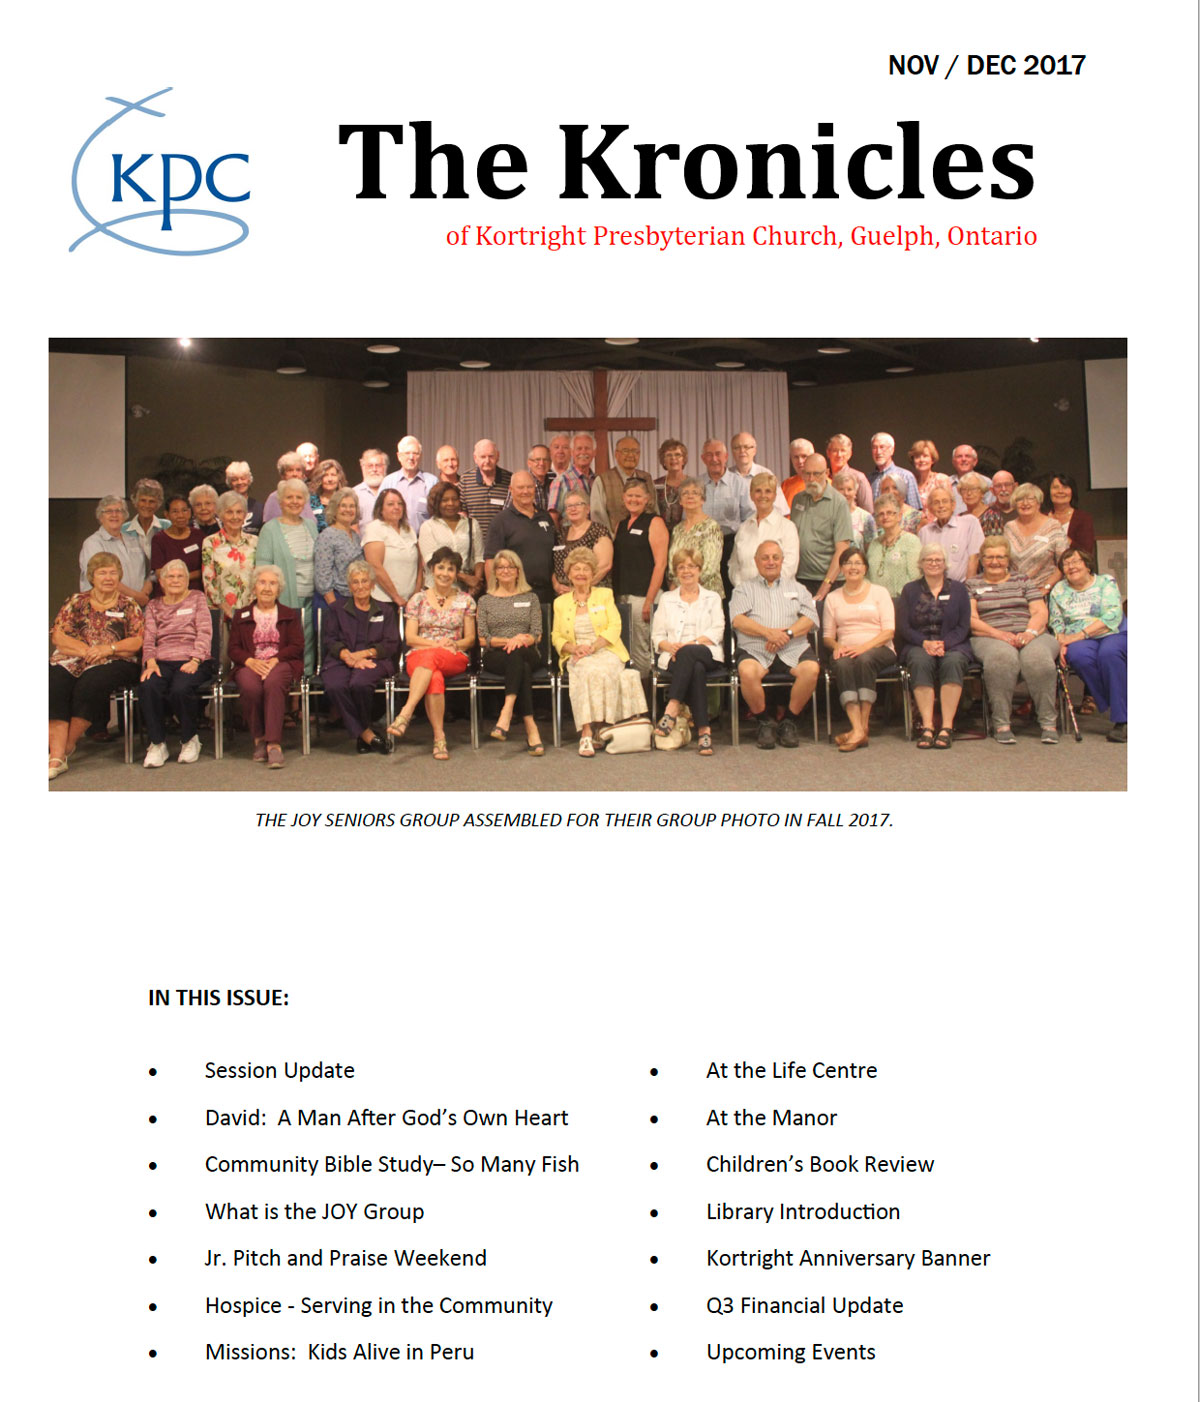 image of the front page of the Kortright Kronicles from November and December 2017